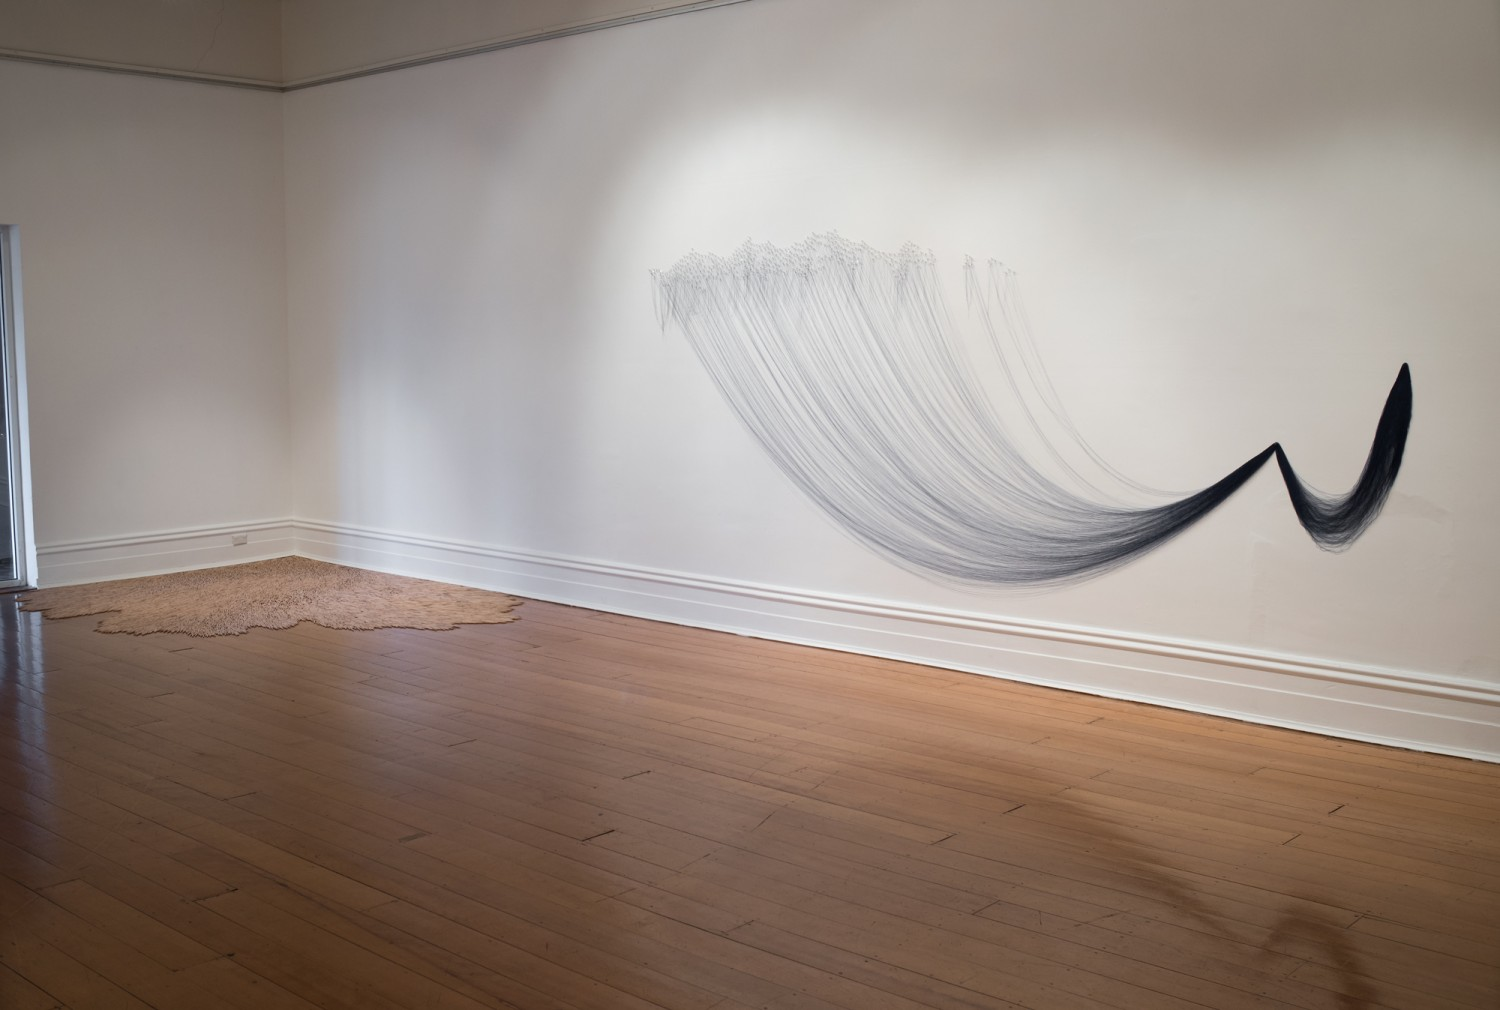 spill, some kind of longing : installation view by Michele Elliot